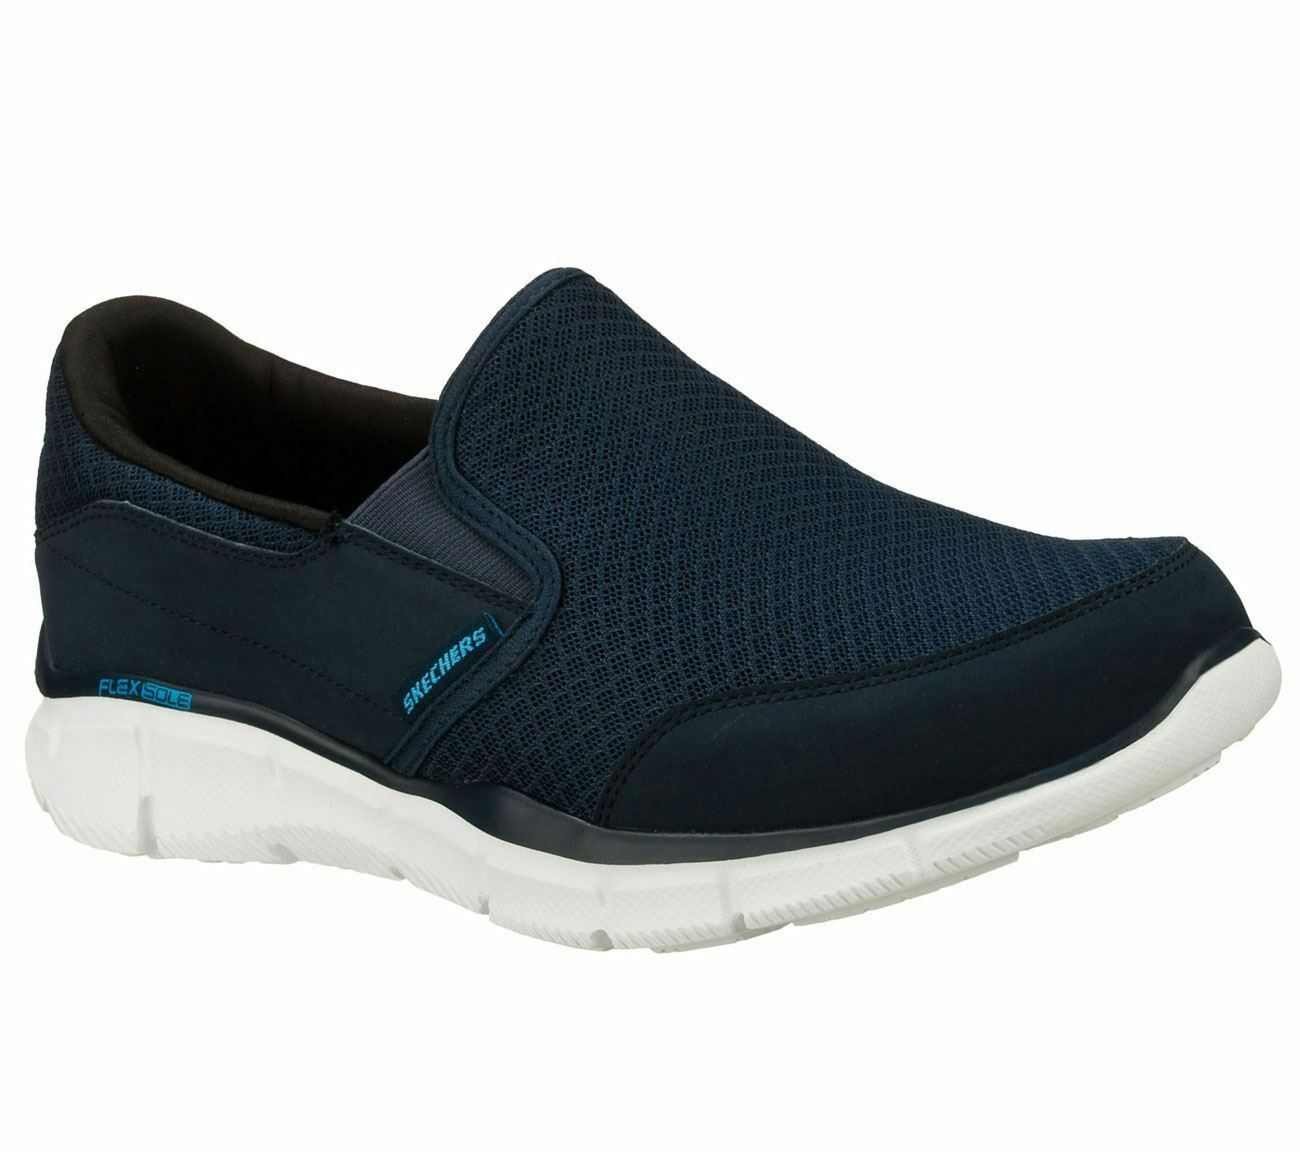 Skechers Scuro Uomo Equilizer Persistente Scarpe da Training in Blu Scuro Skechers Taglia UK6 a UK13 9d20d1